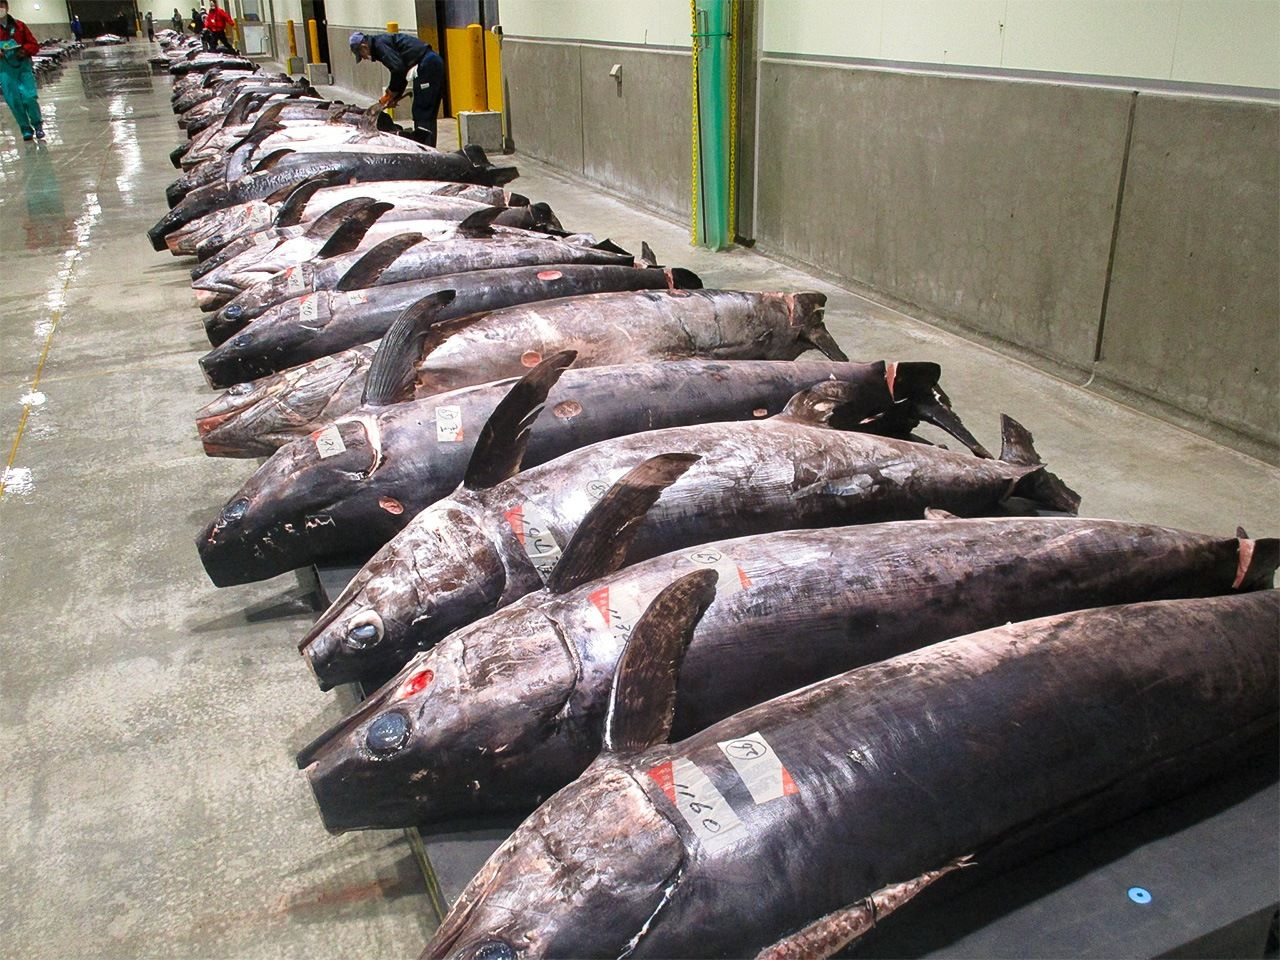 Swordfish at the Kesennuma fish market. Kesennuma boasts more commercial landings of swordfish—some weighing more than 300 kilos—than any other port in Japan.